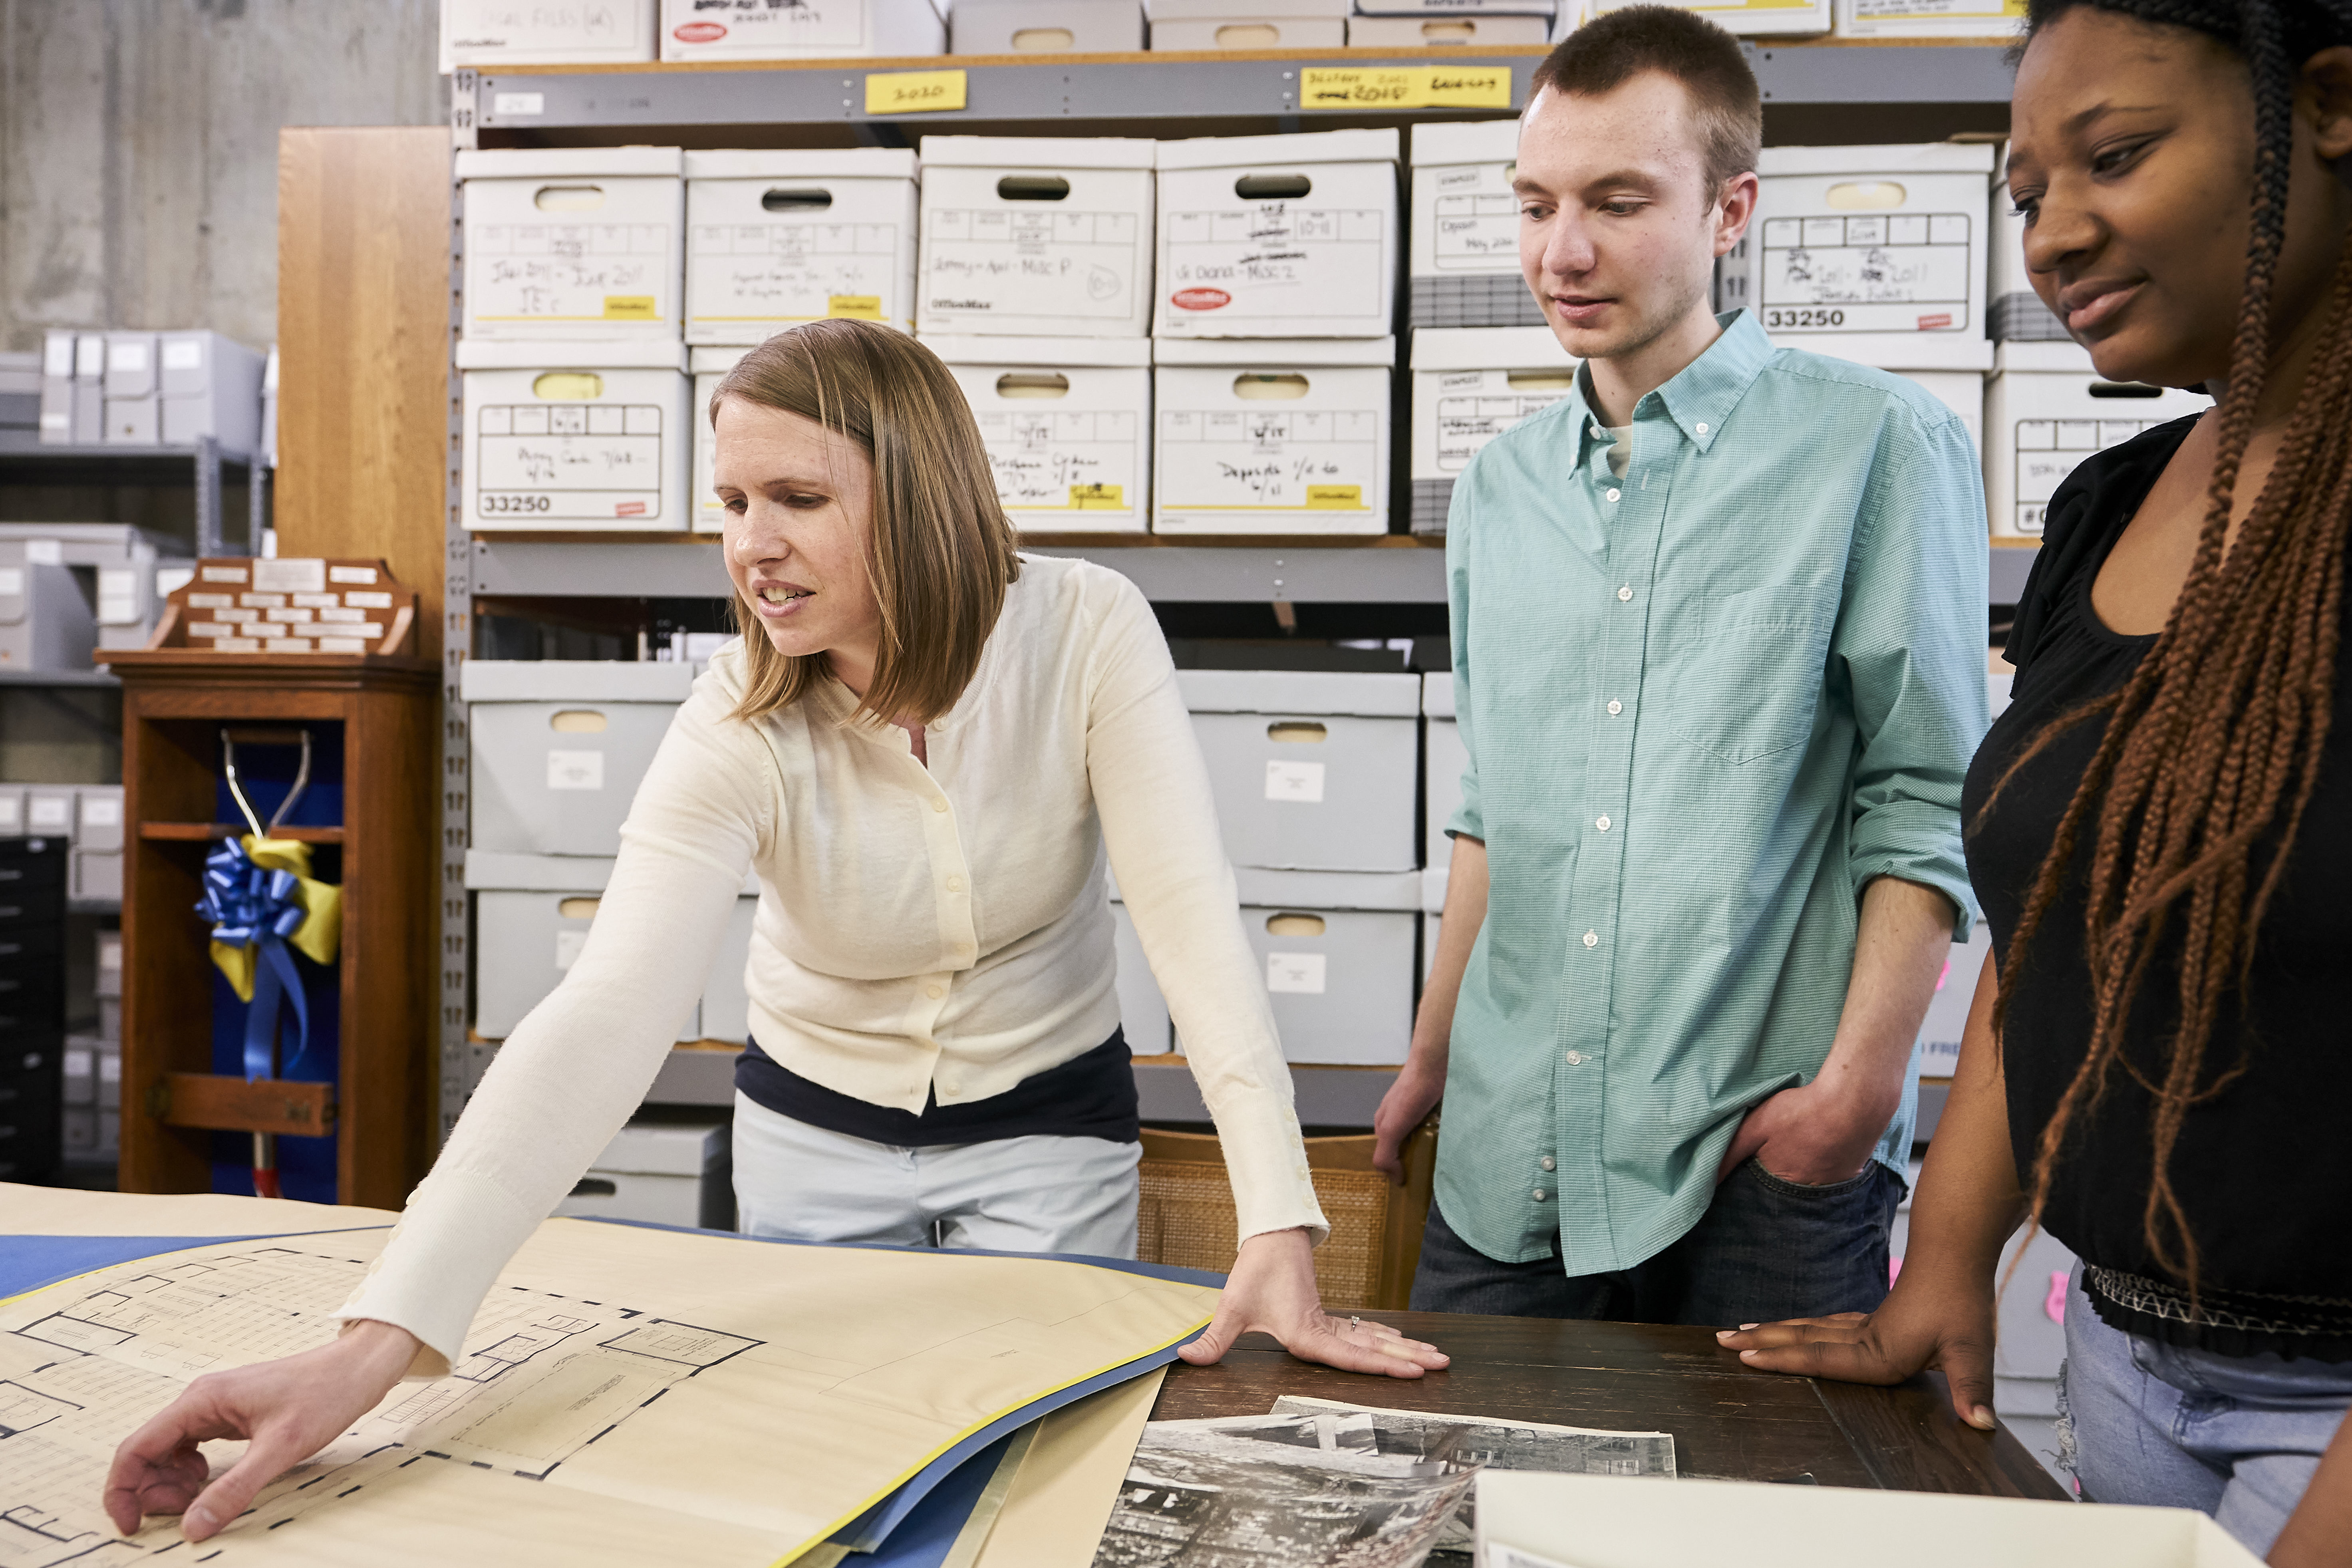 Archivist shows students original floor plans of library